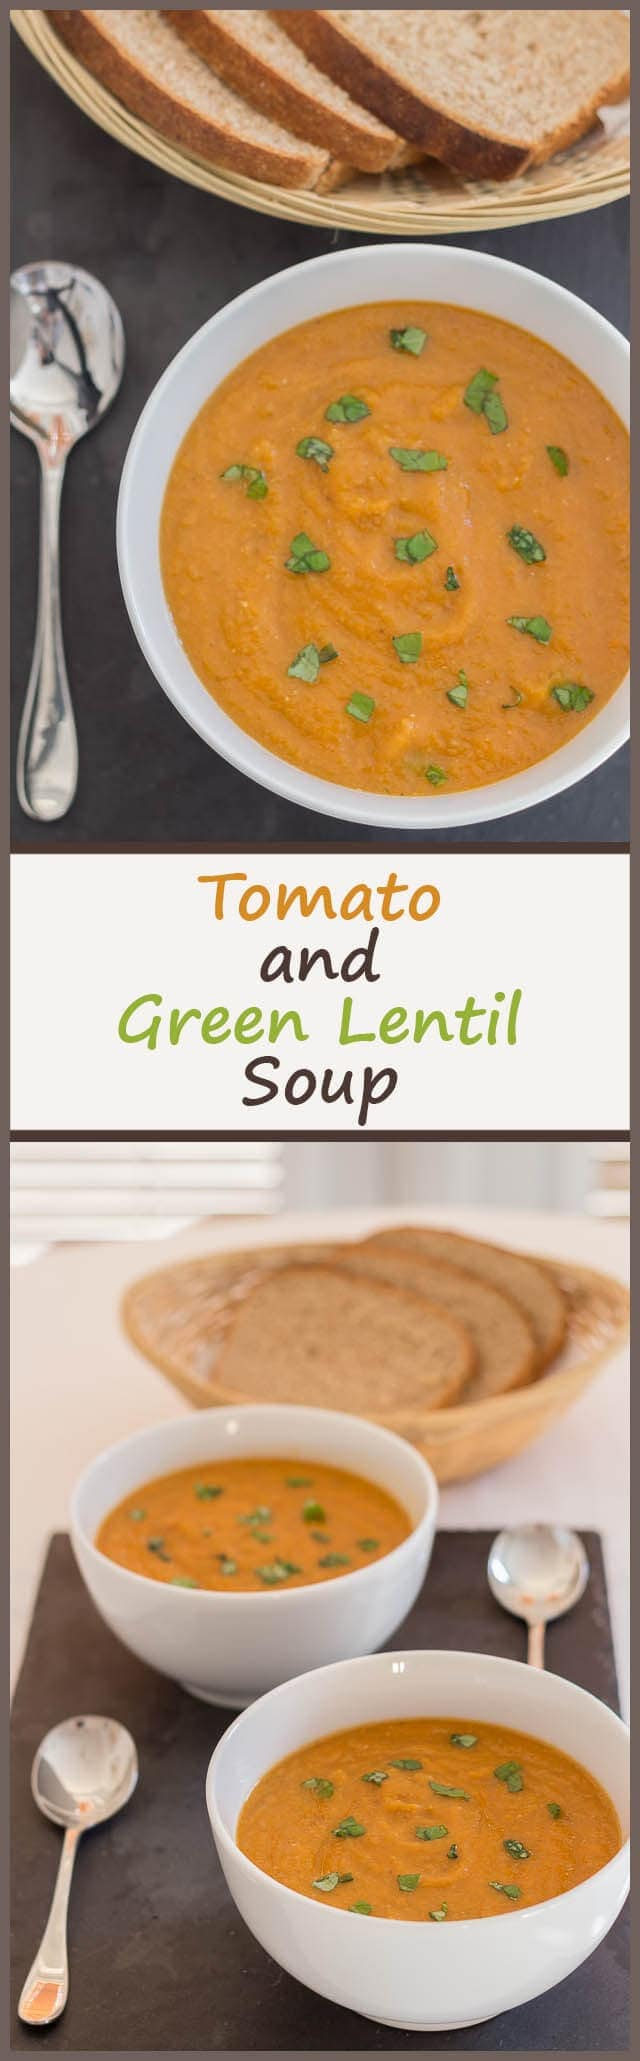 This simple, tasty, tomato and green lentil soup is one rich and satisfying meal! You can be sure that you'll not be tempted to reach for any unhealthy snacks after you've had a bowl of this amazing soup.